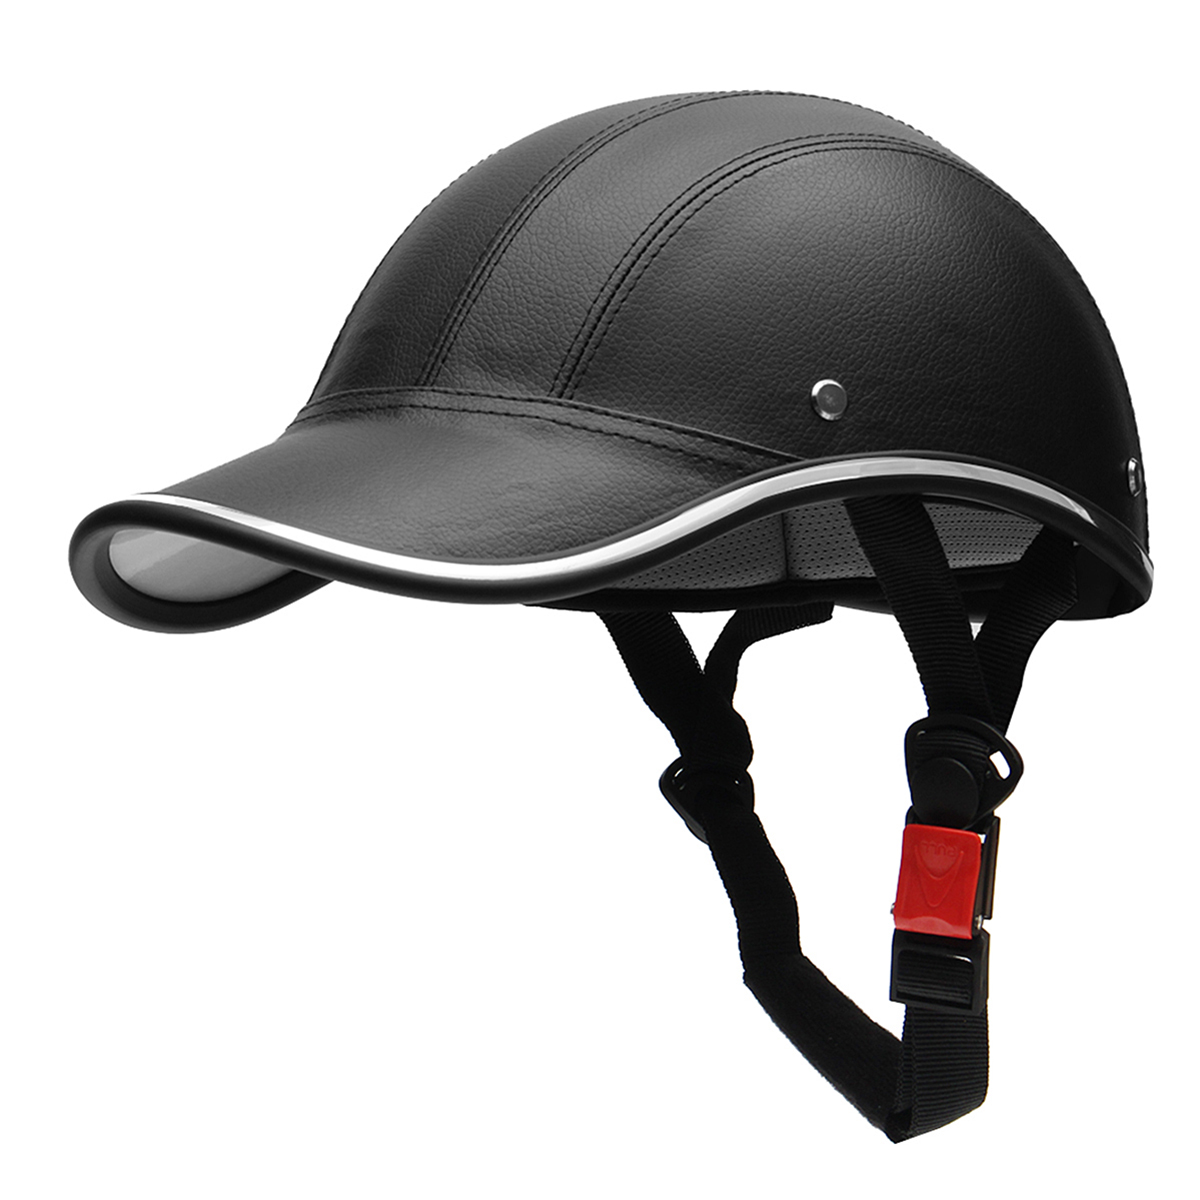 Motorcycle Half Helmet Baseball Cap StyleHalf Face Helmet Electric Bike Scooter Anti-UV Safety Hard Hat